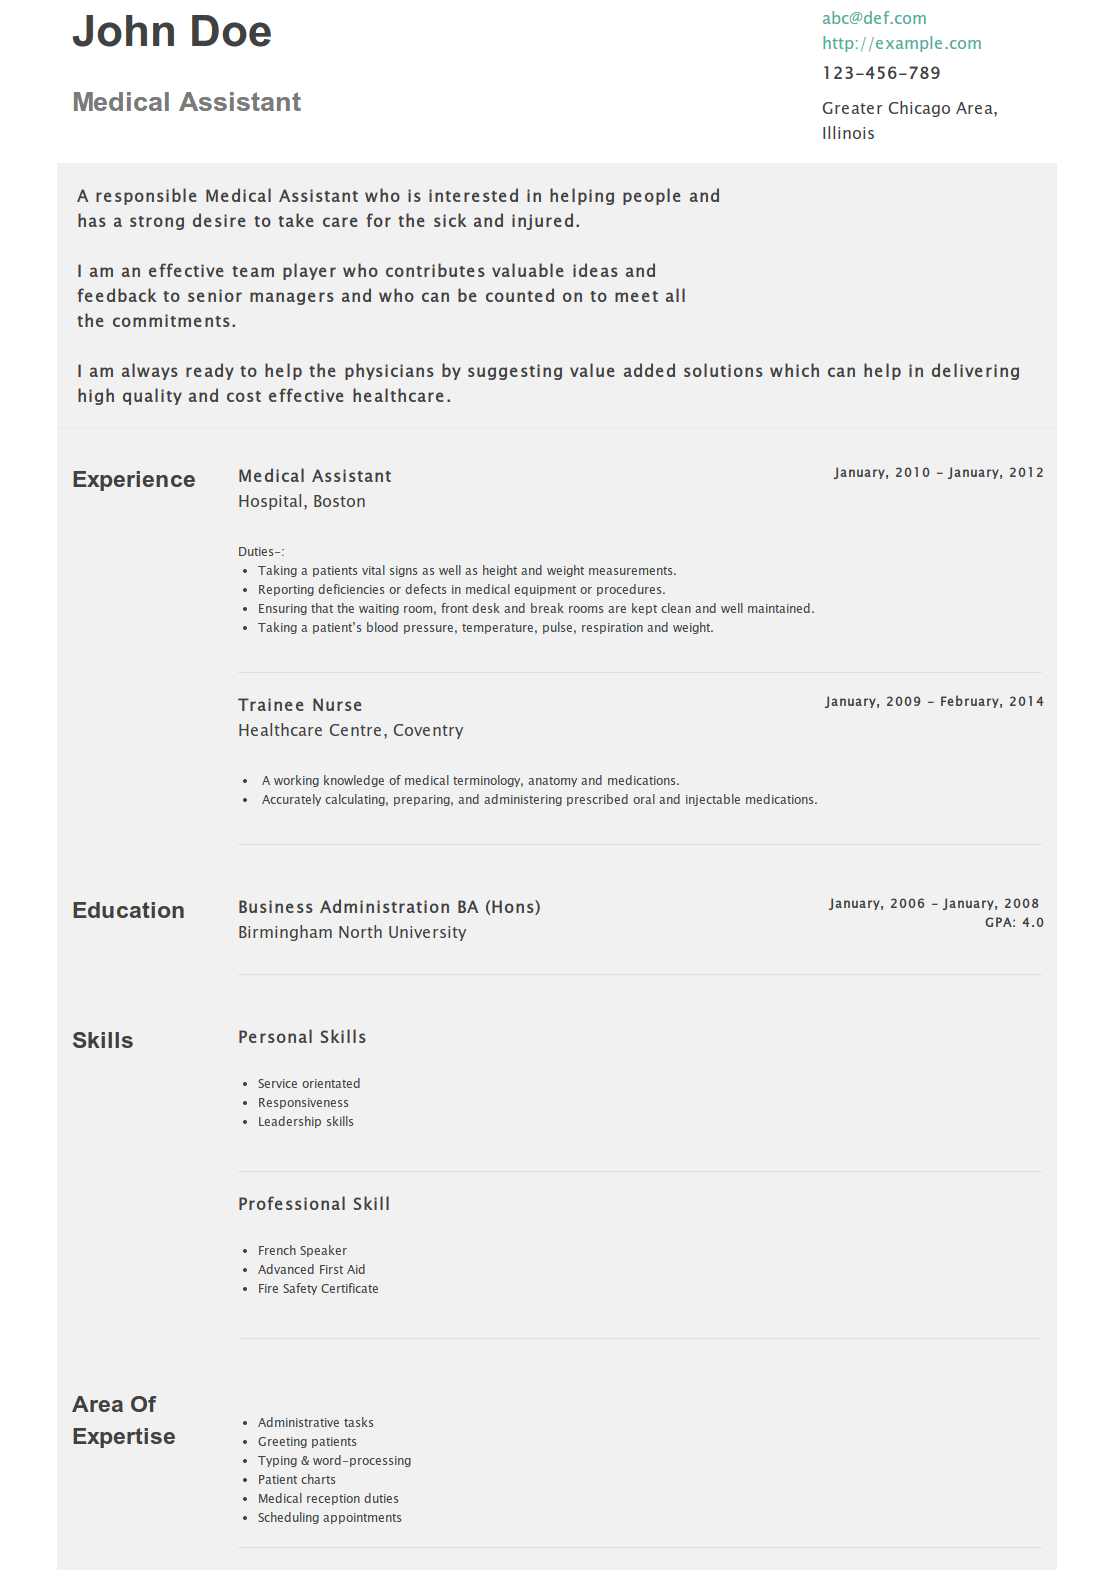 pin by hipcv on hipcv resume examples